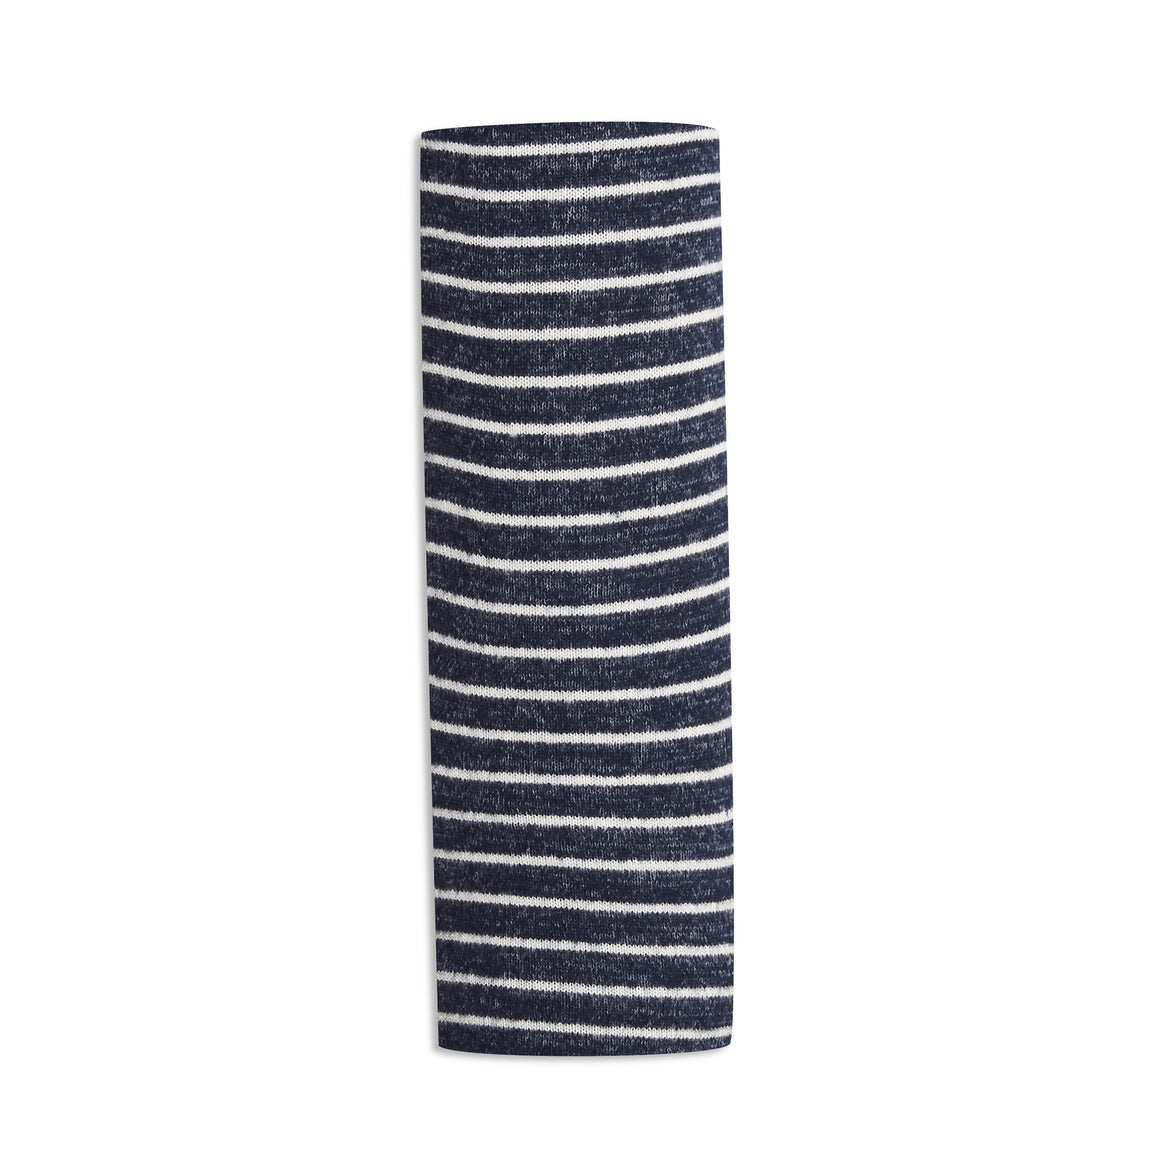 aden+anais snuggle knit blanket - navy stripes